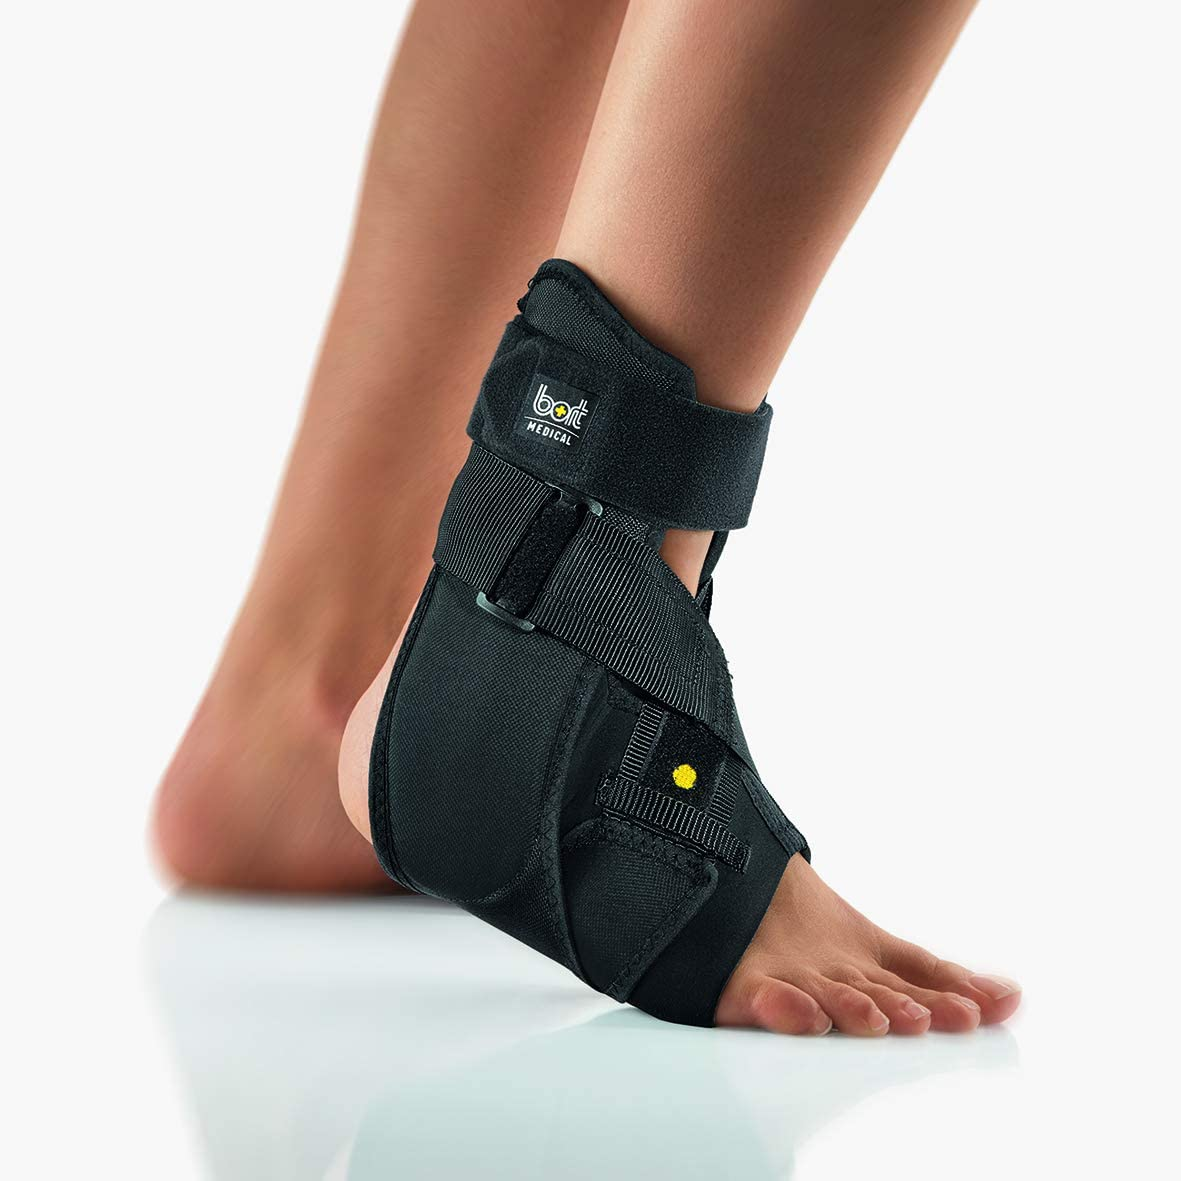 Bort Challenge the lowest price of Japan ☆ 054800 TaloFX Easy-to-use Ankle Adult Adults Instability Brace